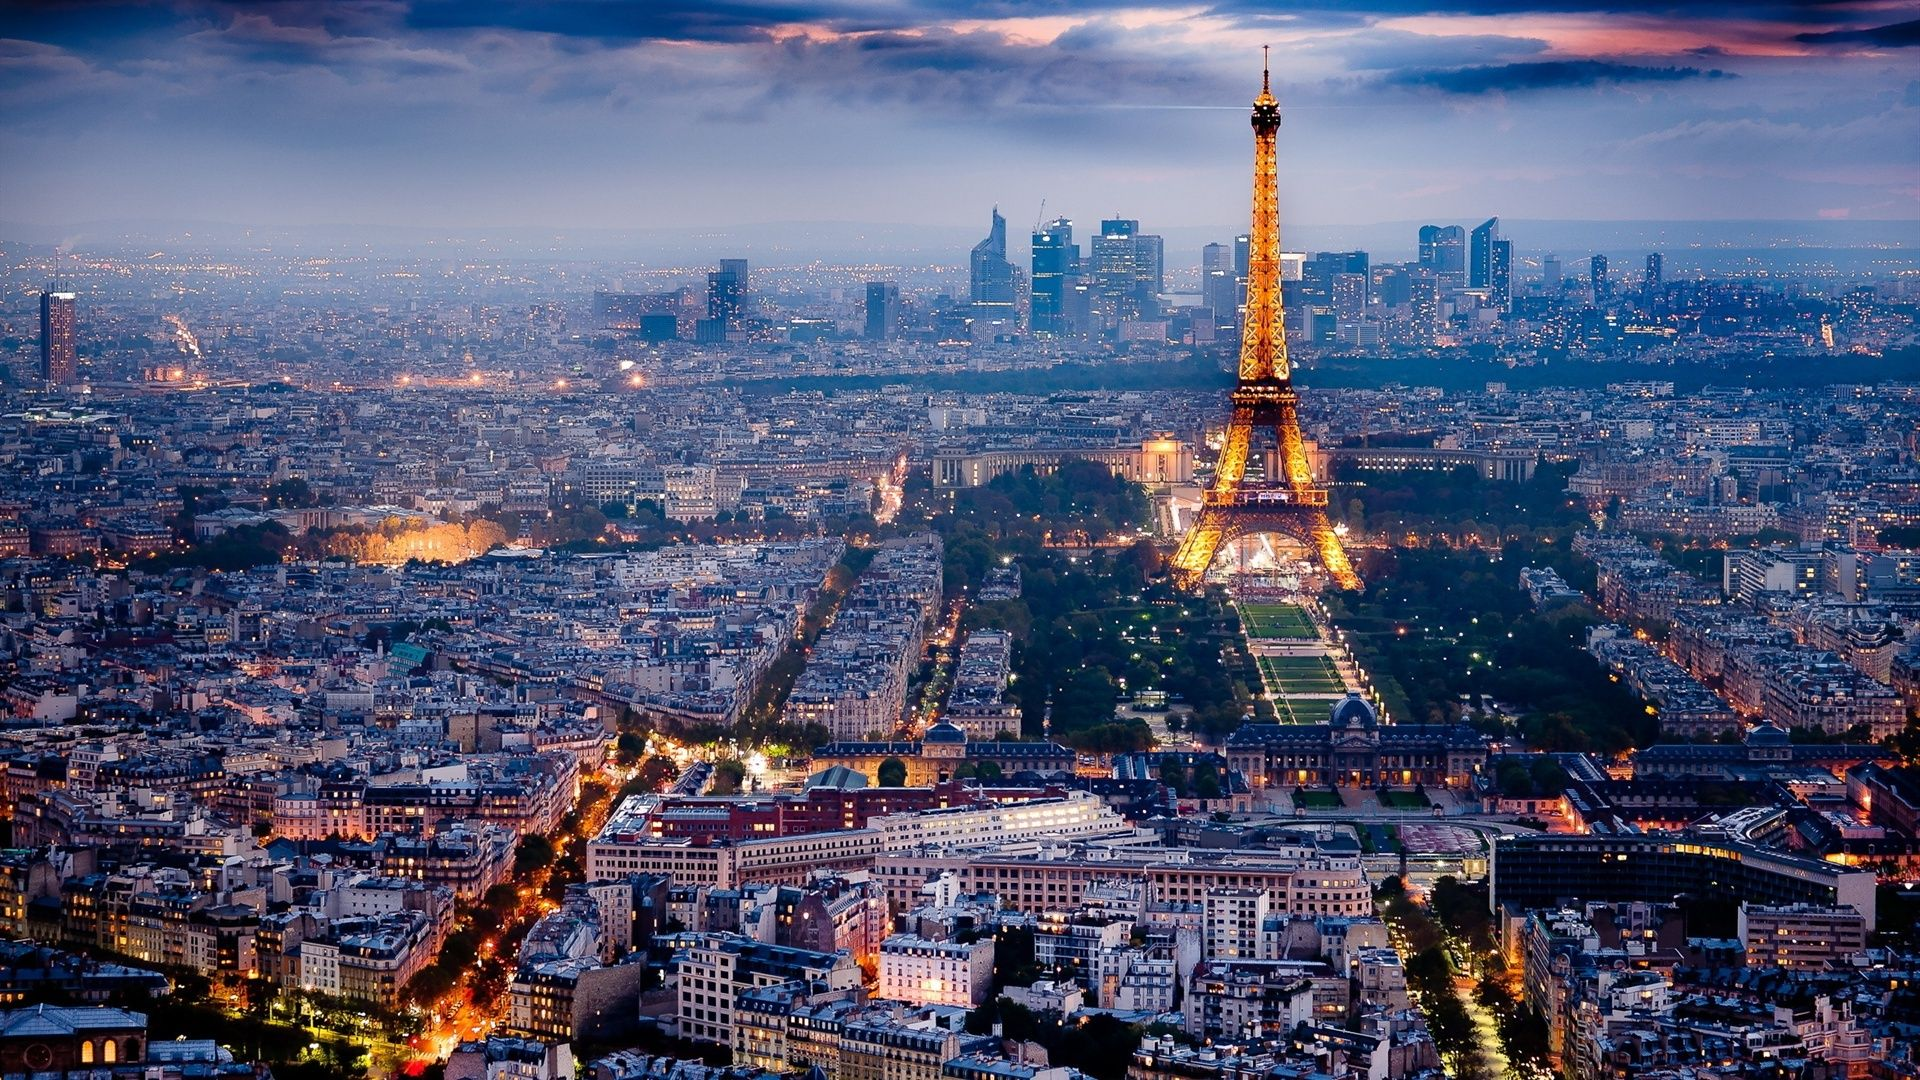 paris hd images get free top quality paris hd images for your desktop pc background